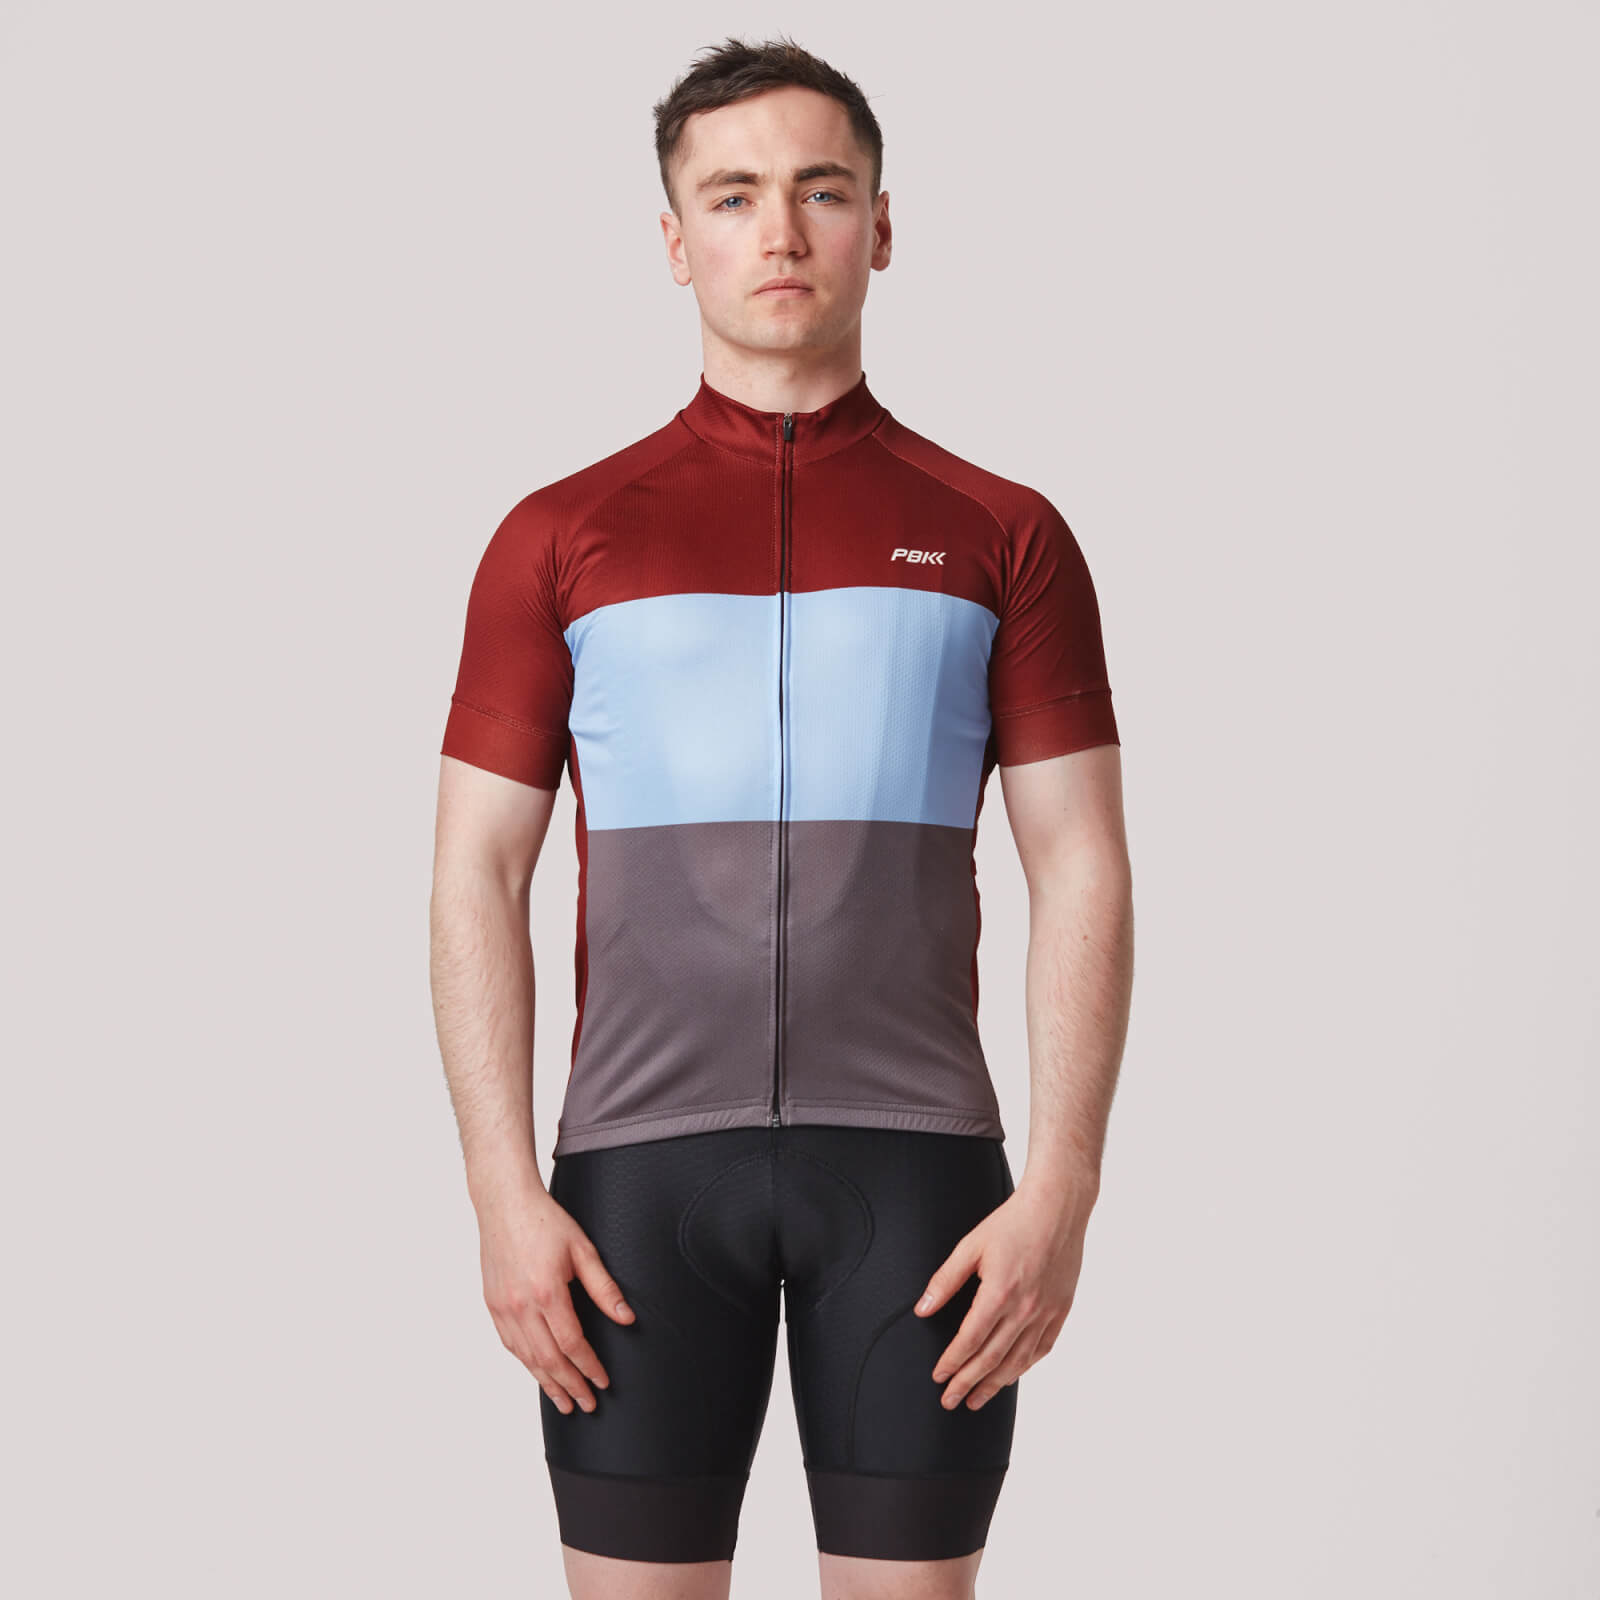 PBK Montagna Jersey - Red/Blue/Grey